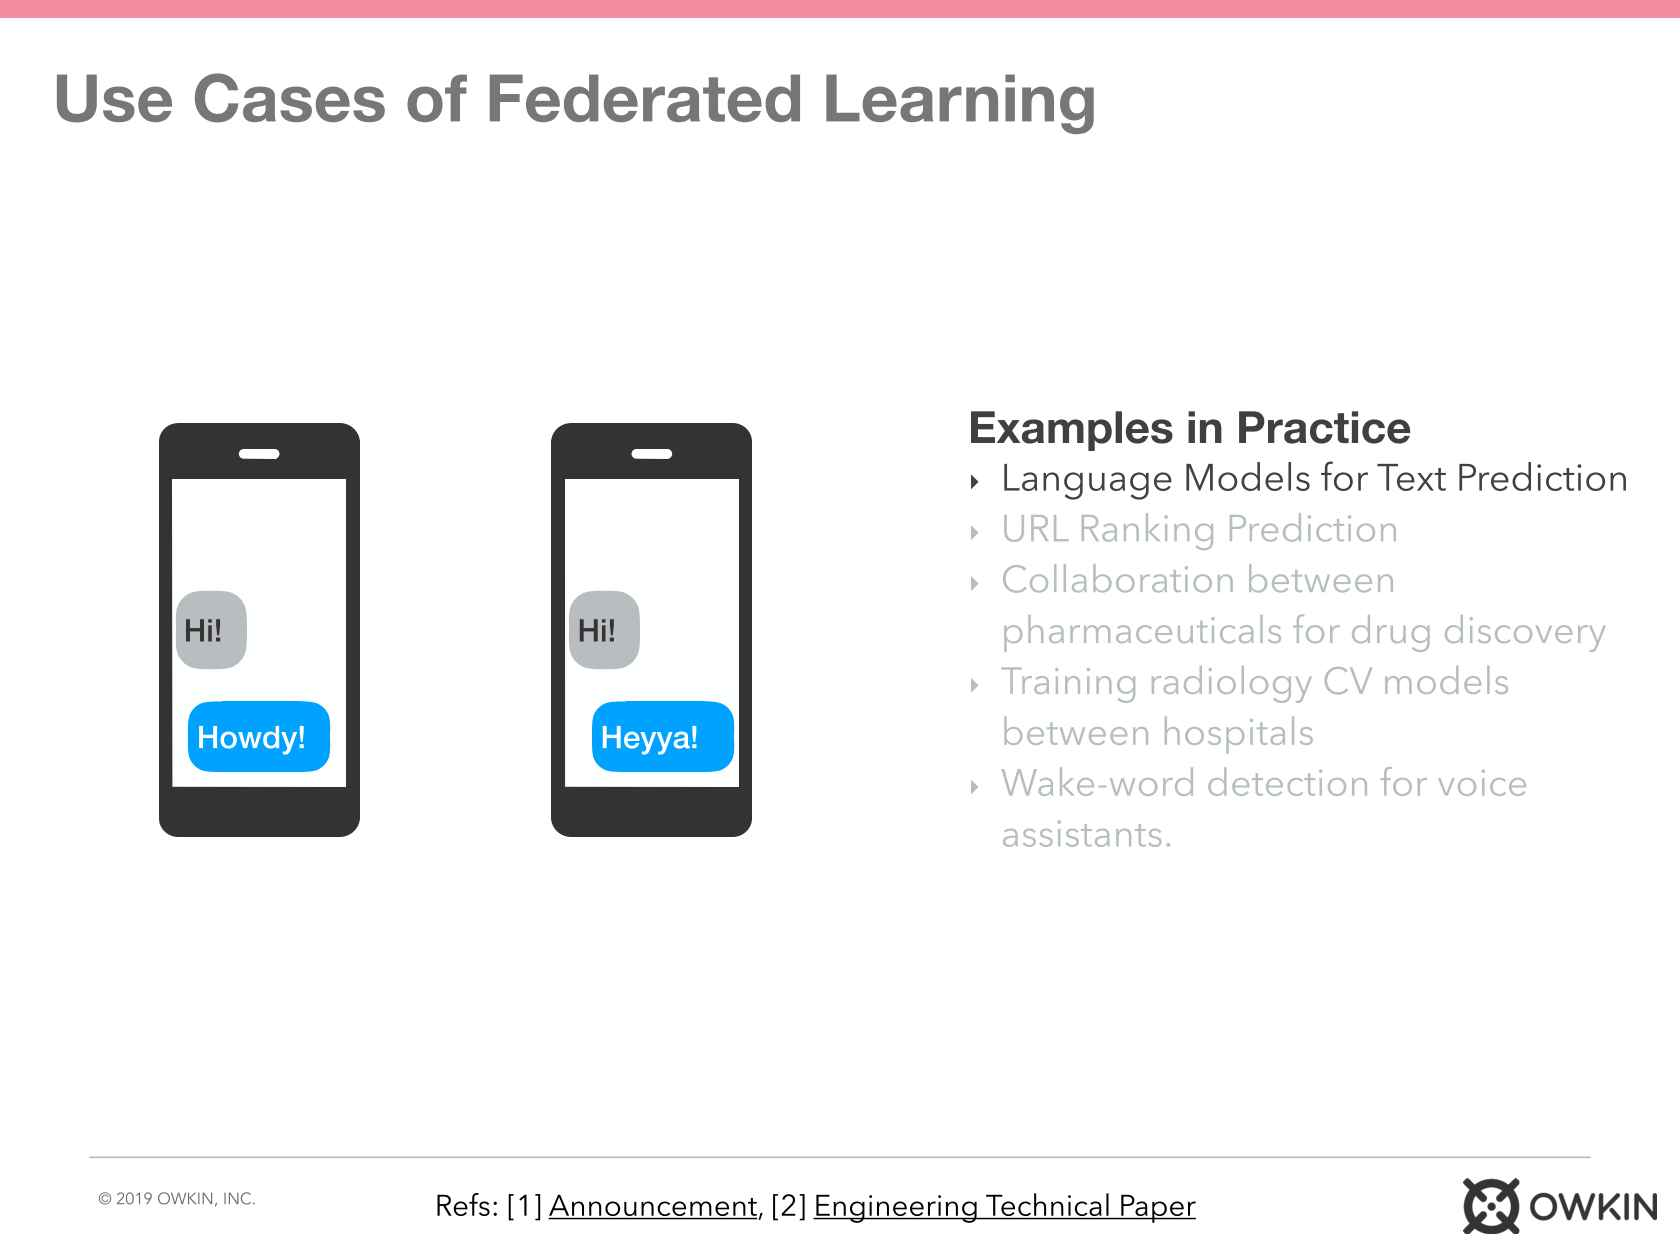 Federated Learning: Rewards & Challenges of Distributed